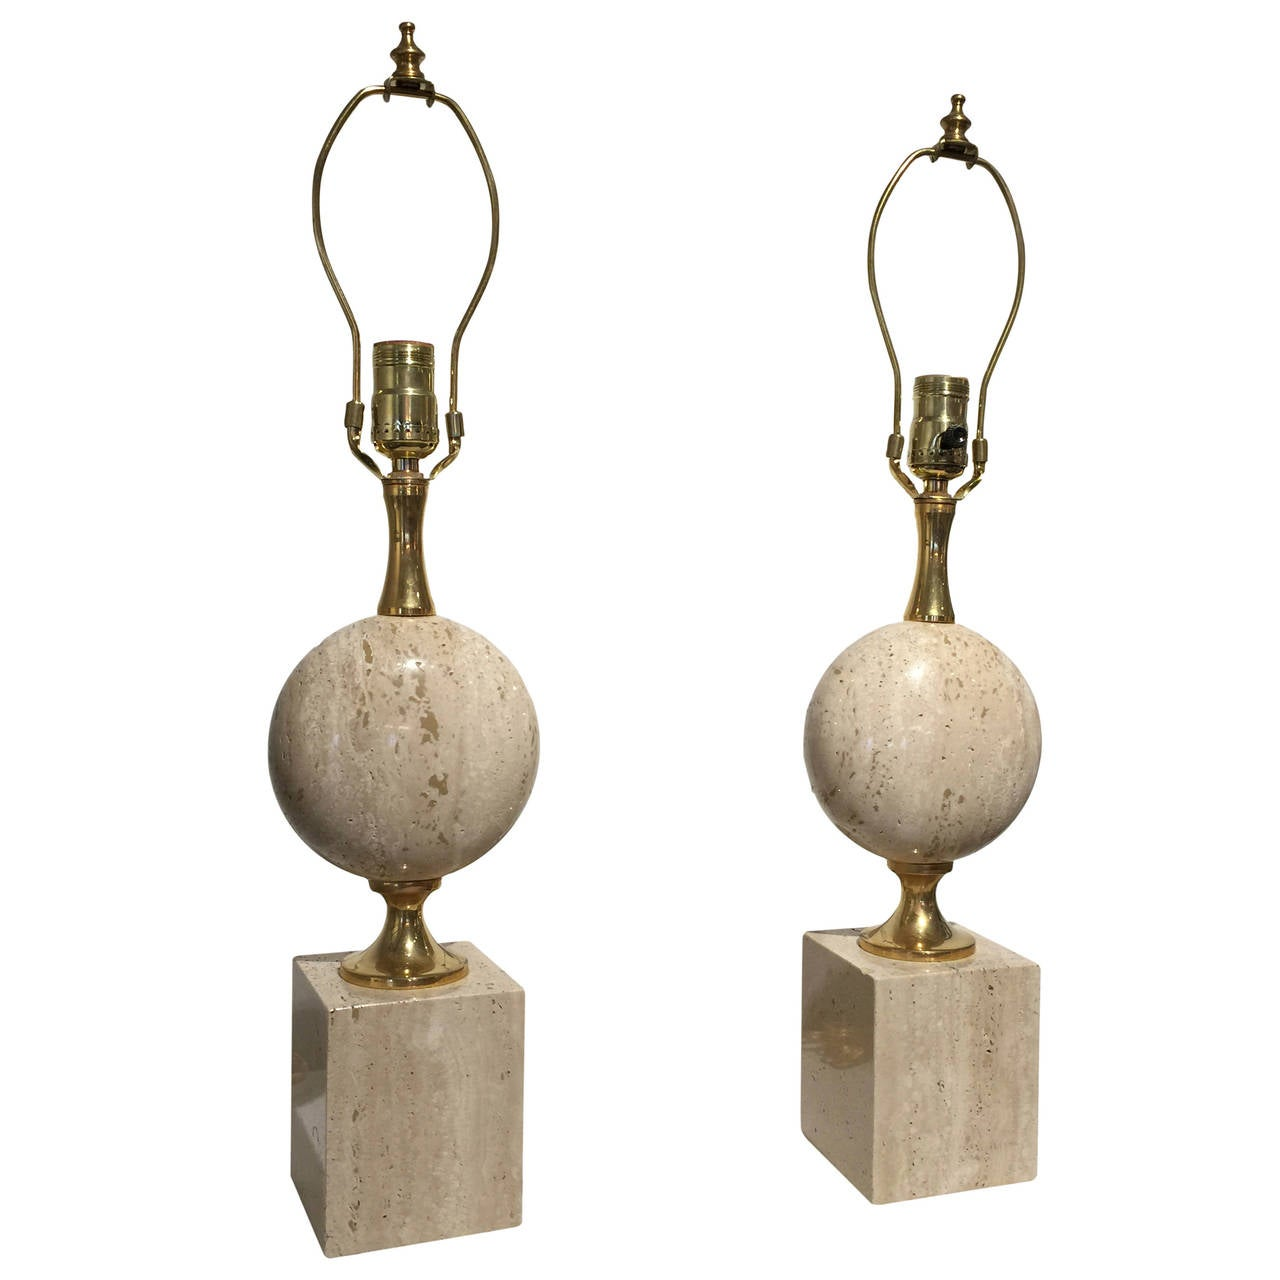 Pair of Beige Travertine Philippe Barbier Table Lamps, France 1970s